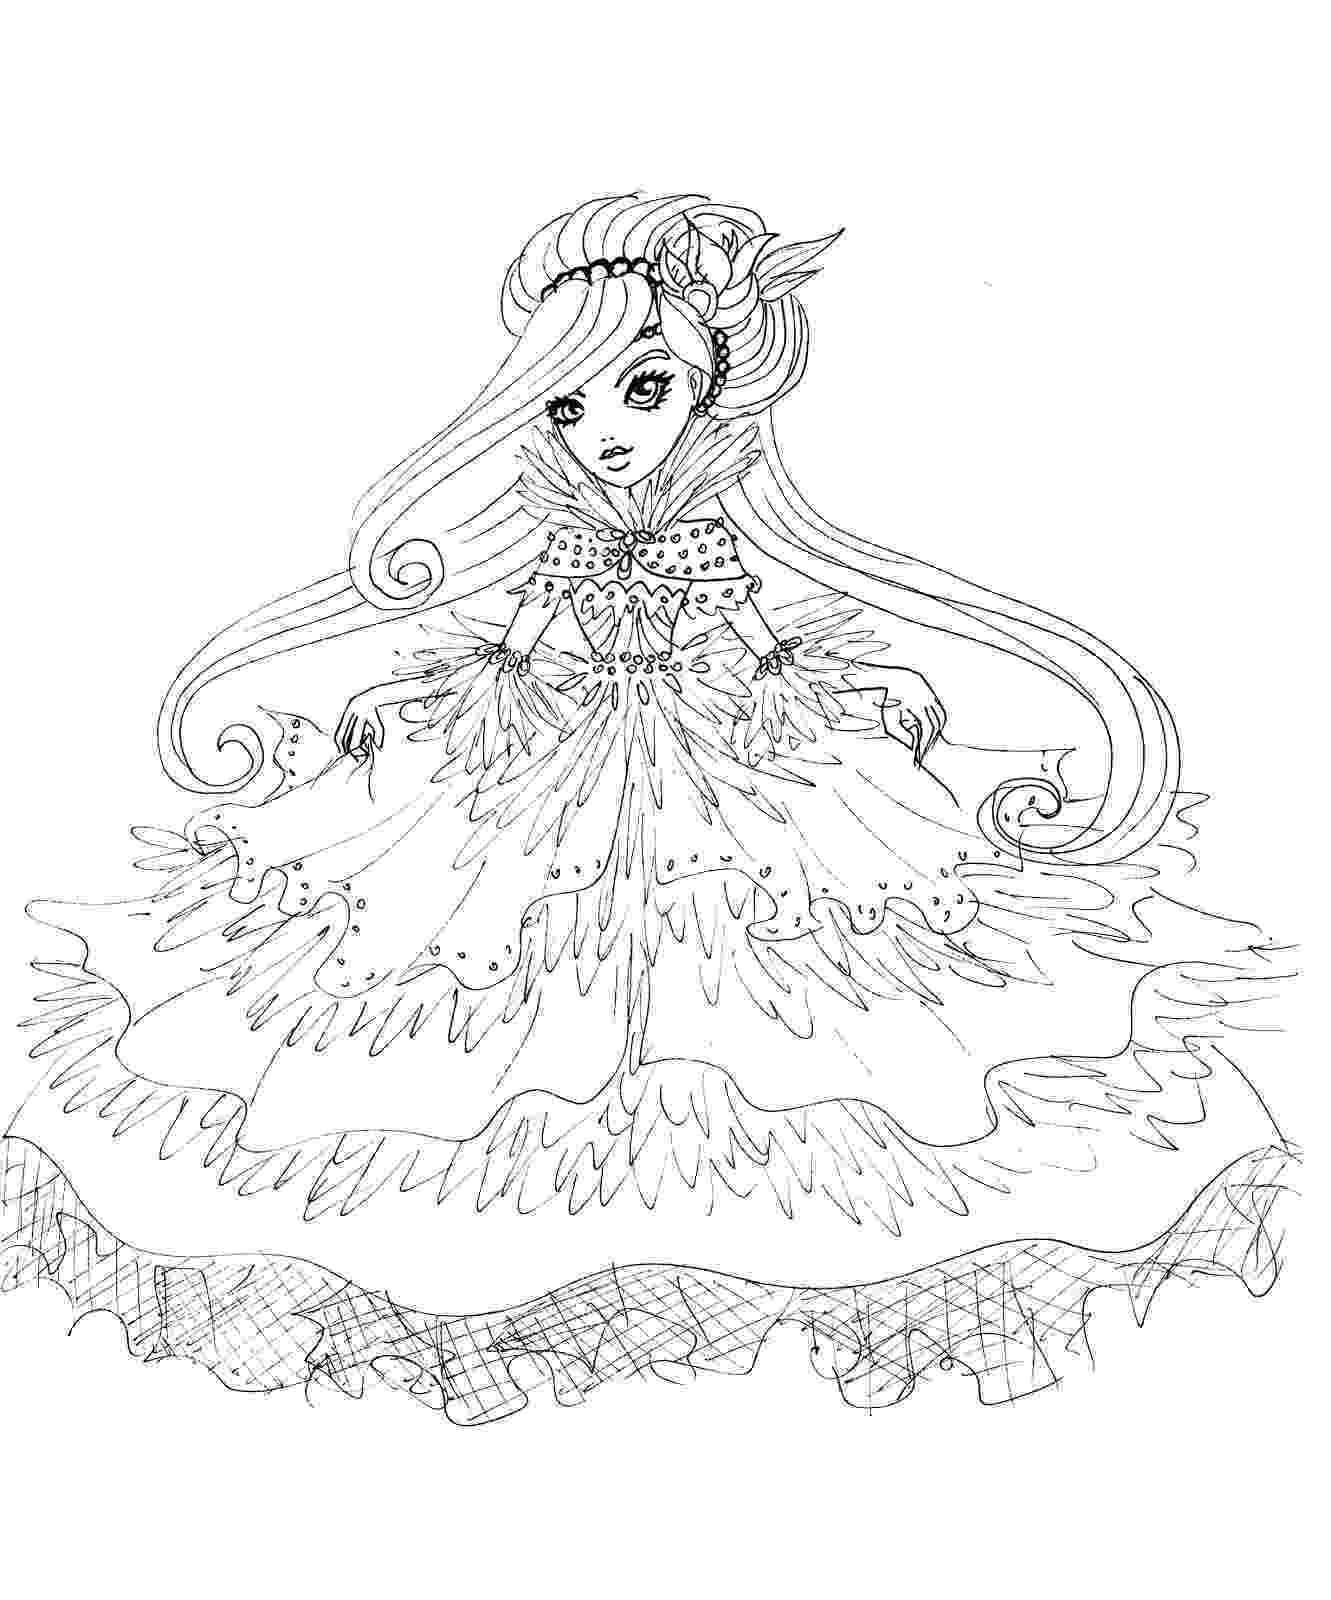 ever after high printables ever after high coloring pages to download and print for free after ever high printables